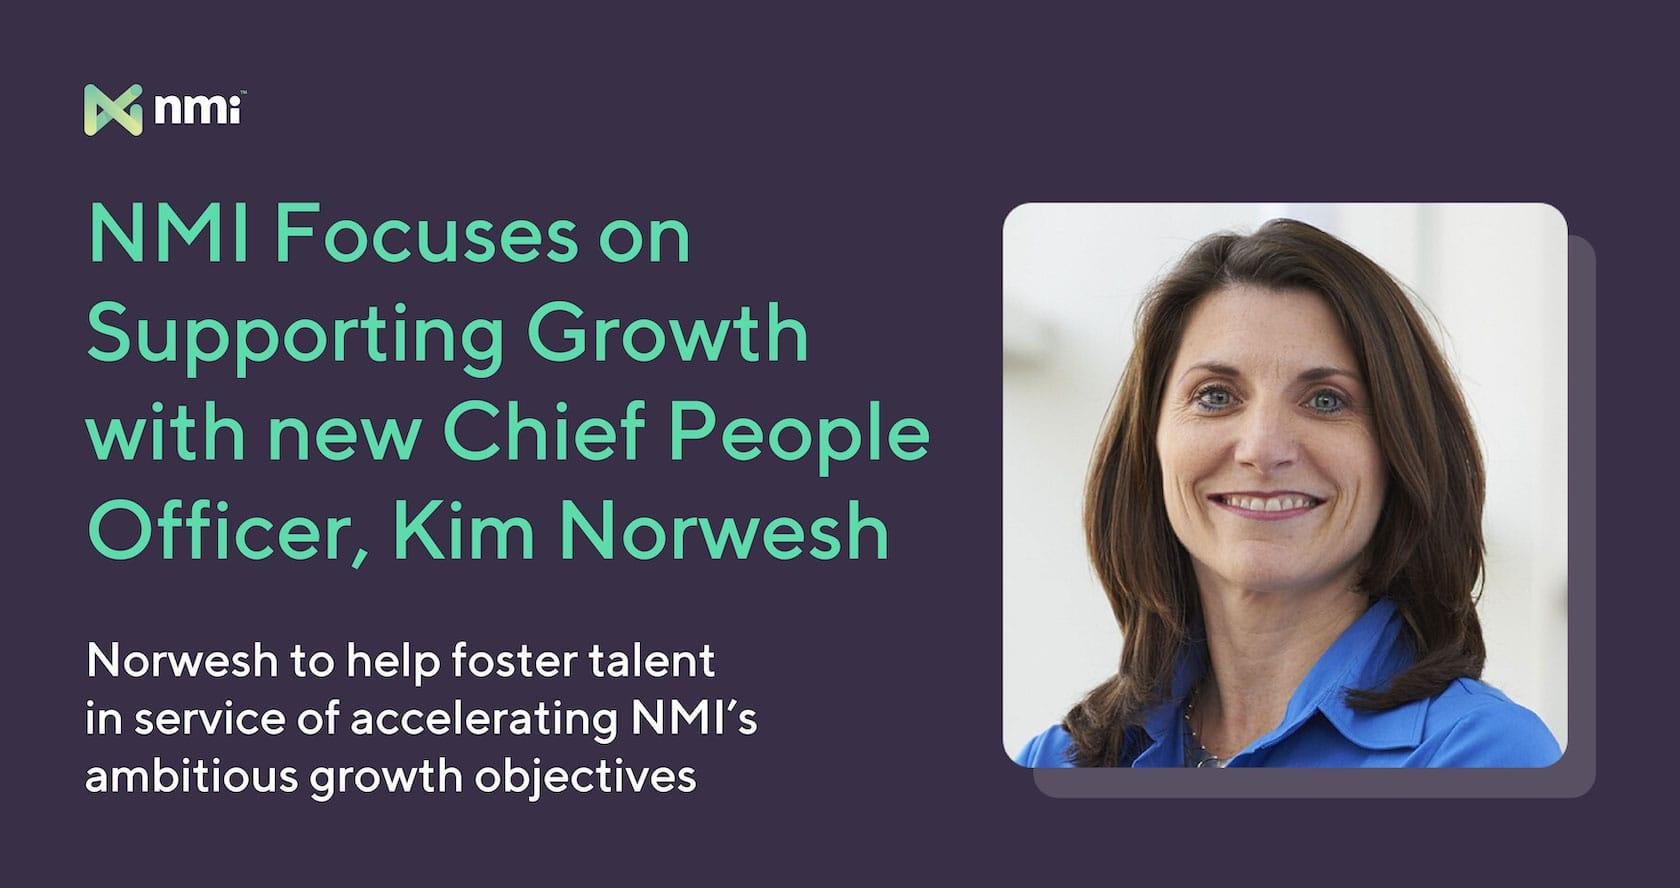 NMI Focuses on Supporting Growth with new Chief People Officer, Kim NorweshNMI Focuses on Supporting Growth with new Chief People Officer, Kim Norwesh